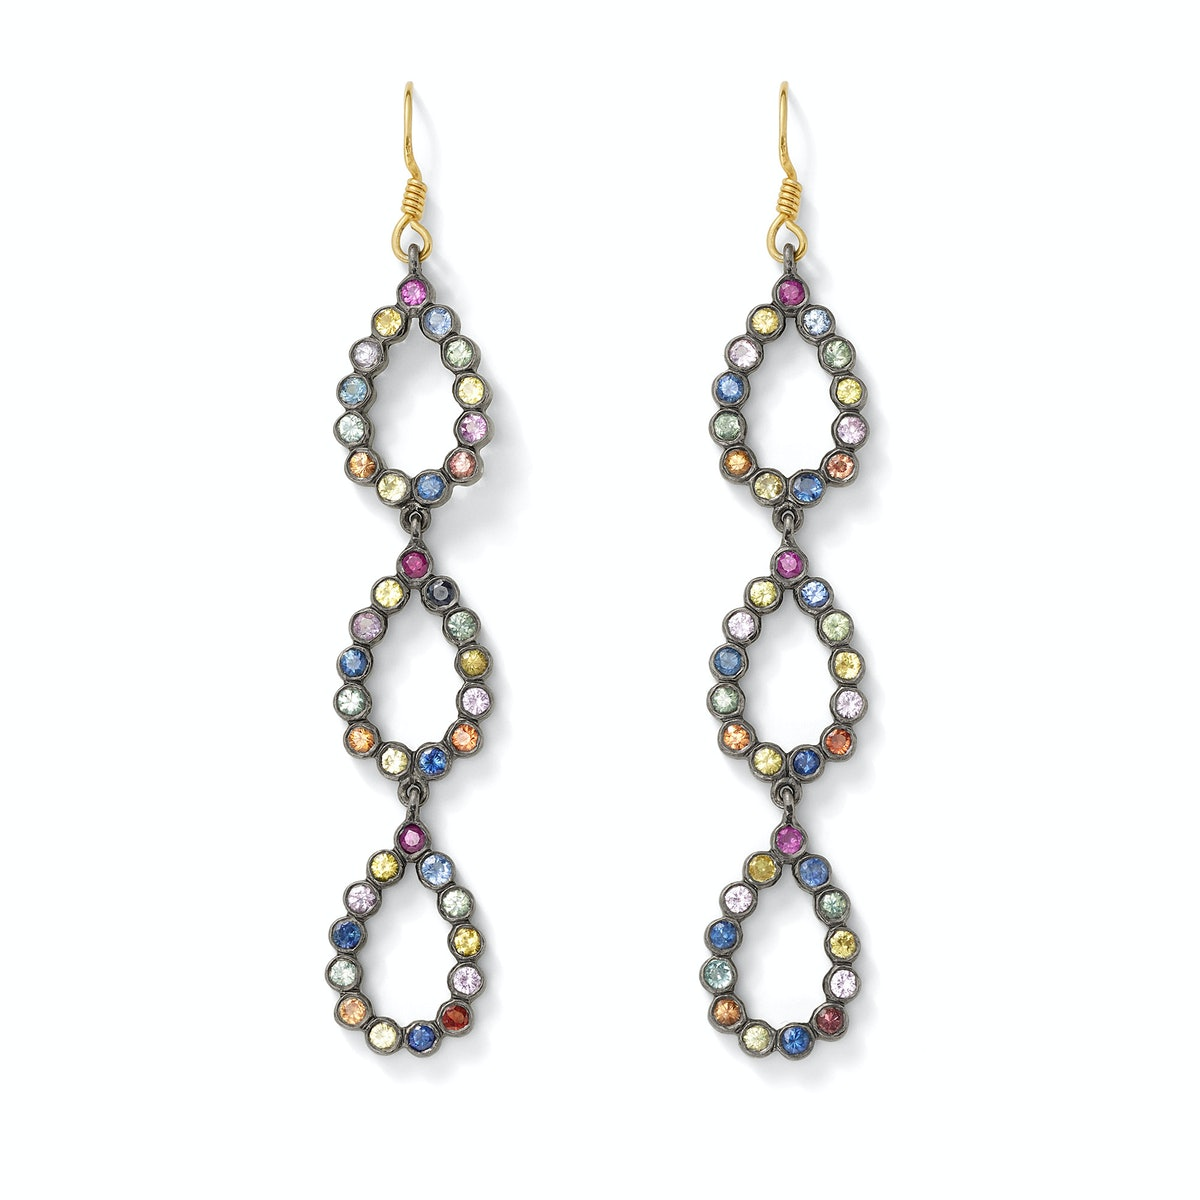 Shebee oxidized sterling silver and multicolored sapphire earrings